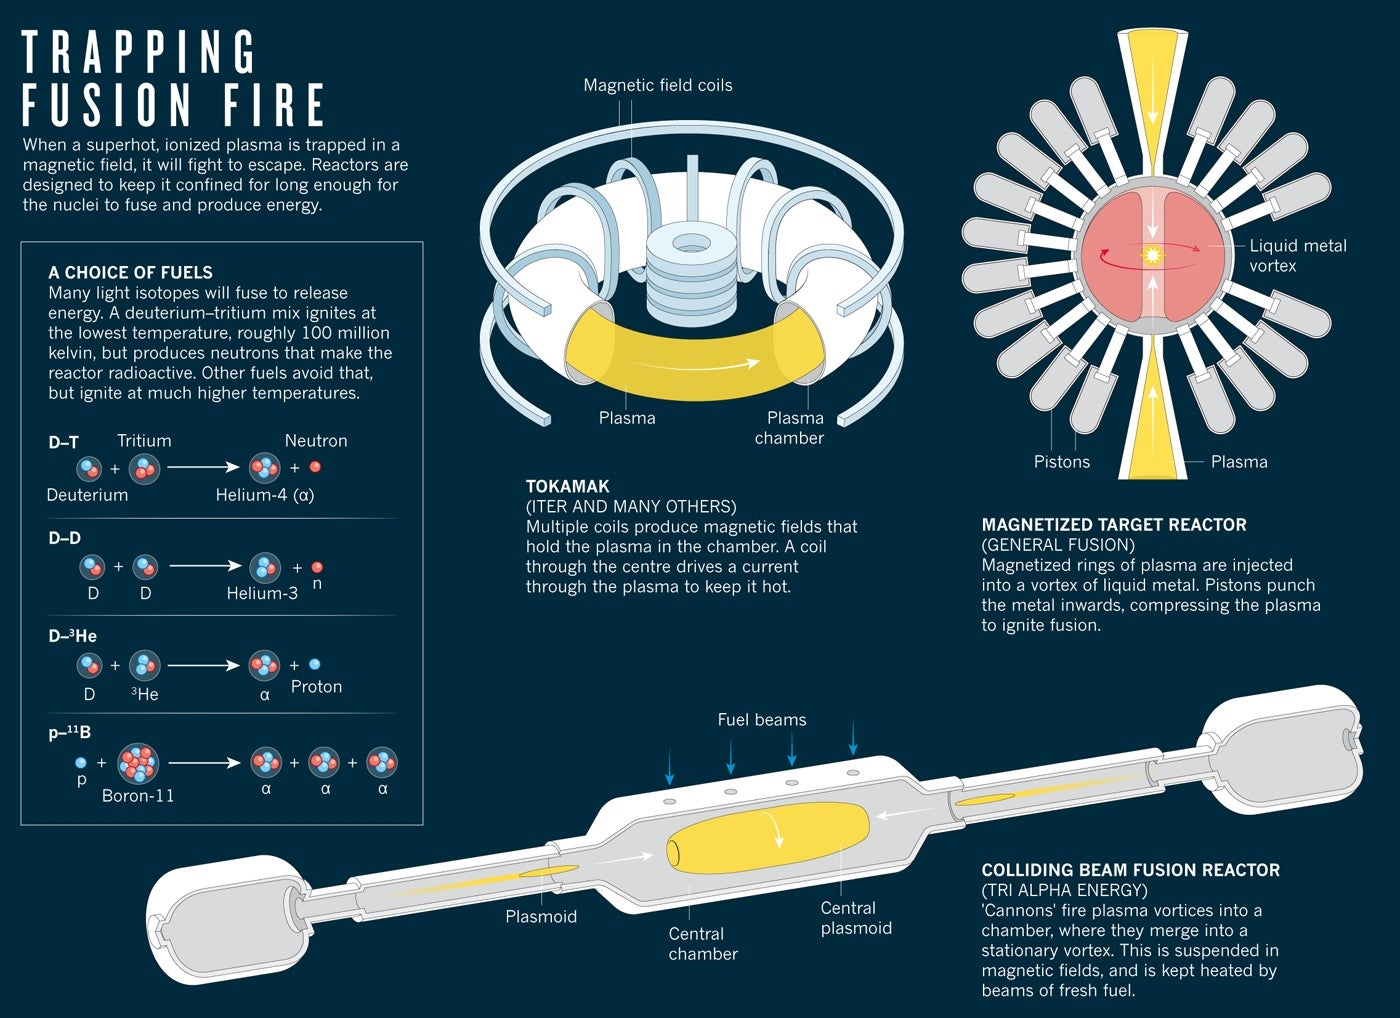 Alternative Fusion Technologies Heat Up Scientific American The Worlds Largest Reactor Click To Enlarge